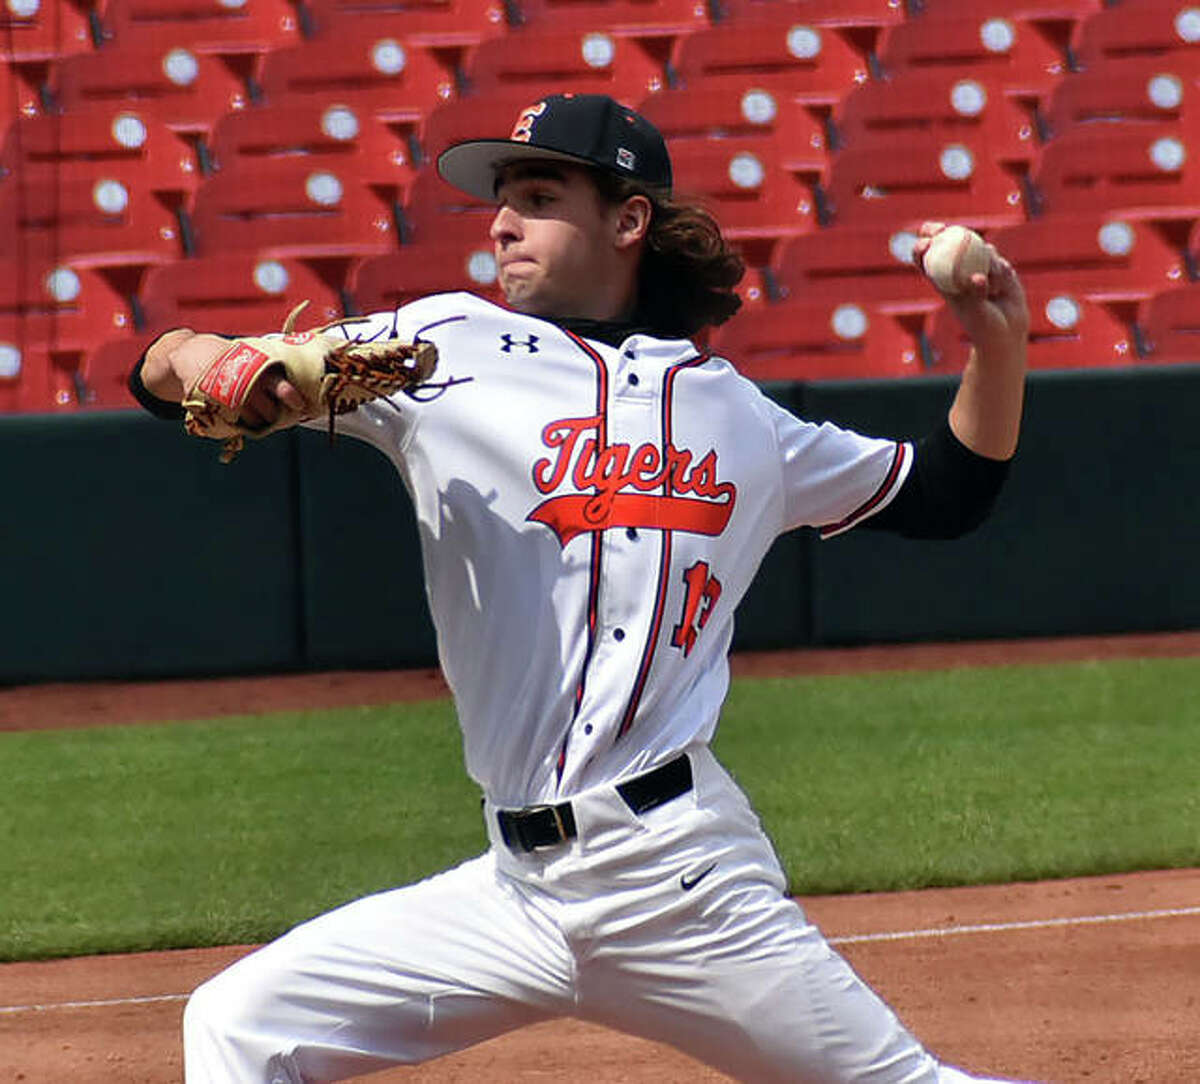 Edwardsville pitcher Conrad Heppler, shown throwing in a game at Busch Stadium in St. Louis earlier this season, picked up the win as the first of seven Tigers pitchers to throw Friday in a win over CM at the Bethalto Sports Complex.